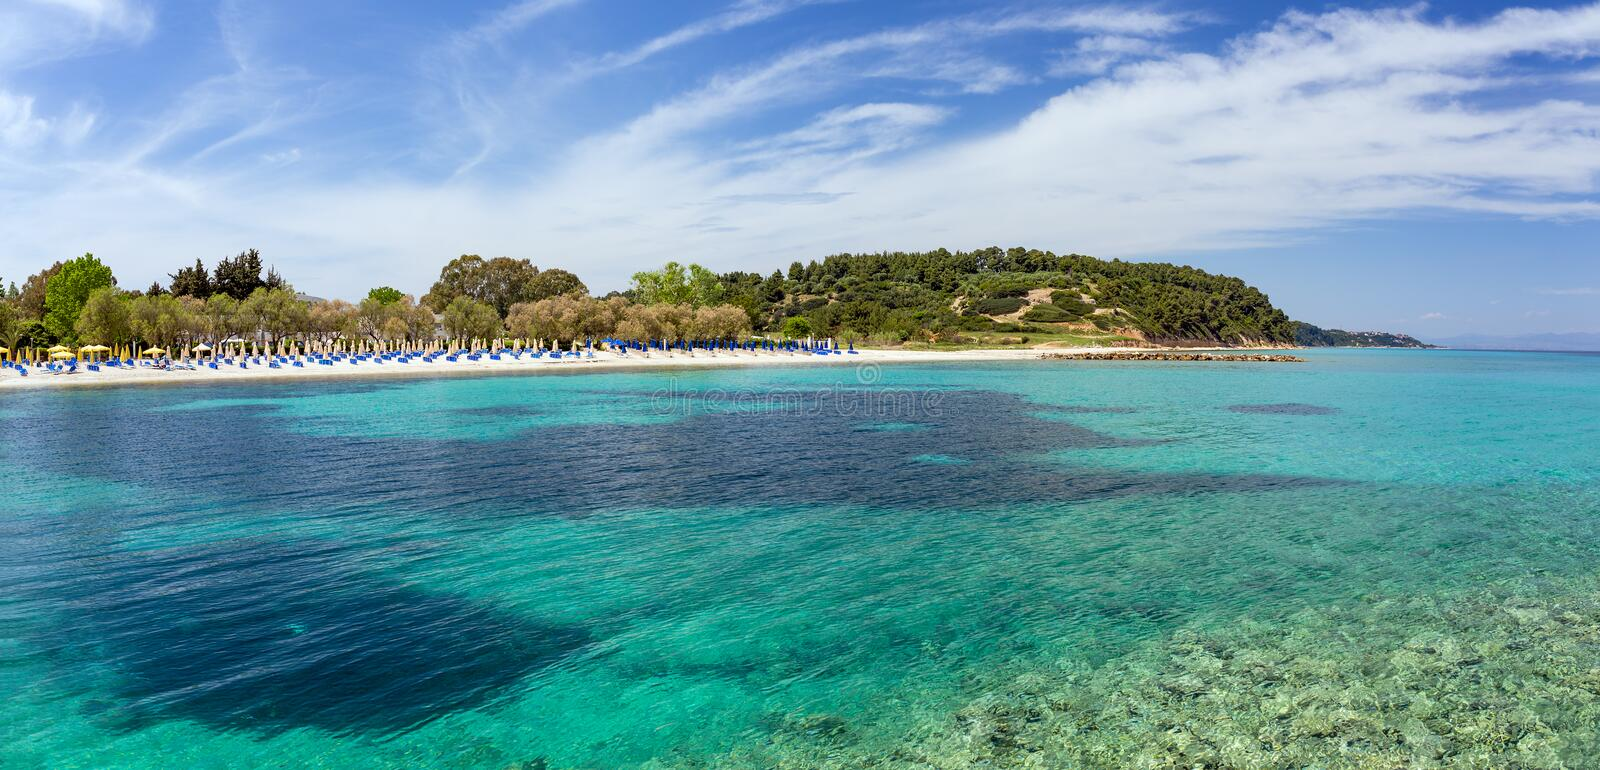 Beautiful beach in Kallithea, Halkidiki, Greece. During the summer months Kallithea is the most popular village in Halkidiki. It is located in the first stock images